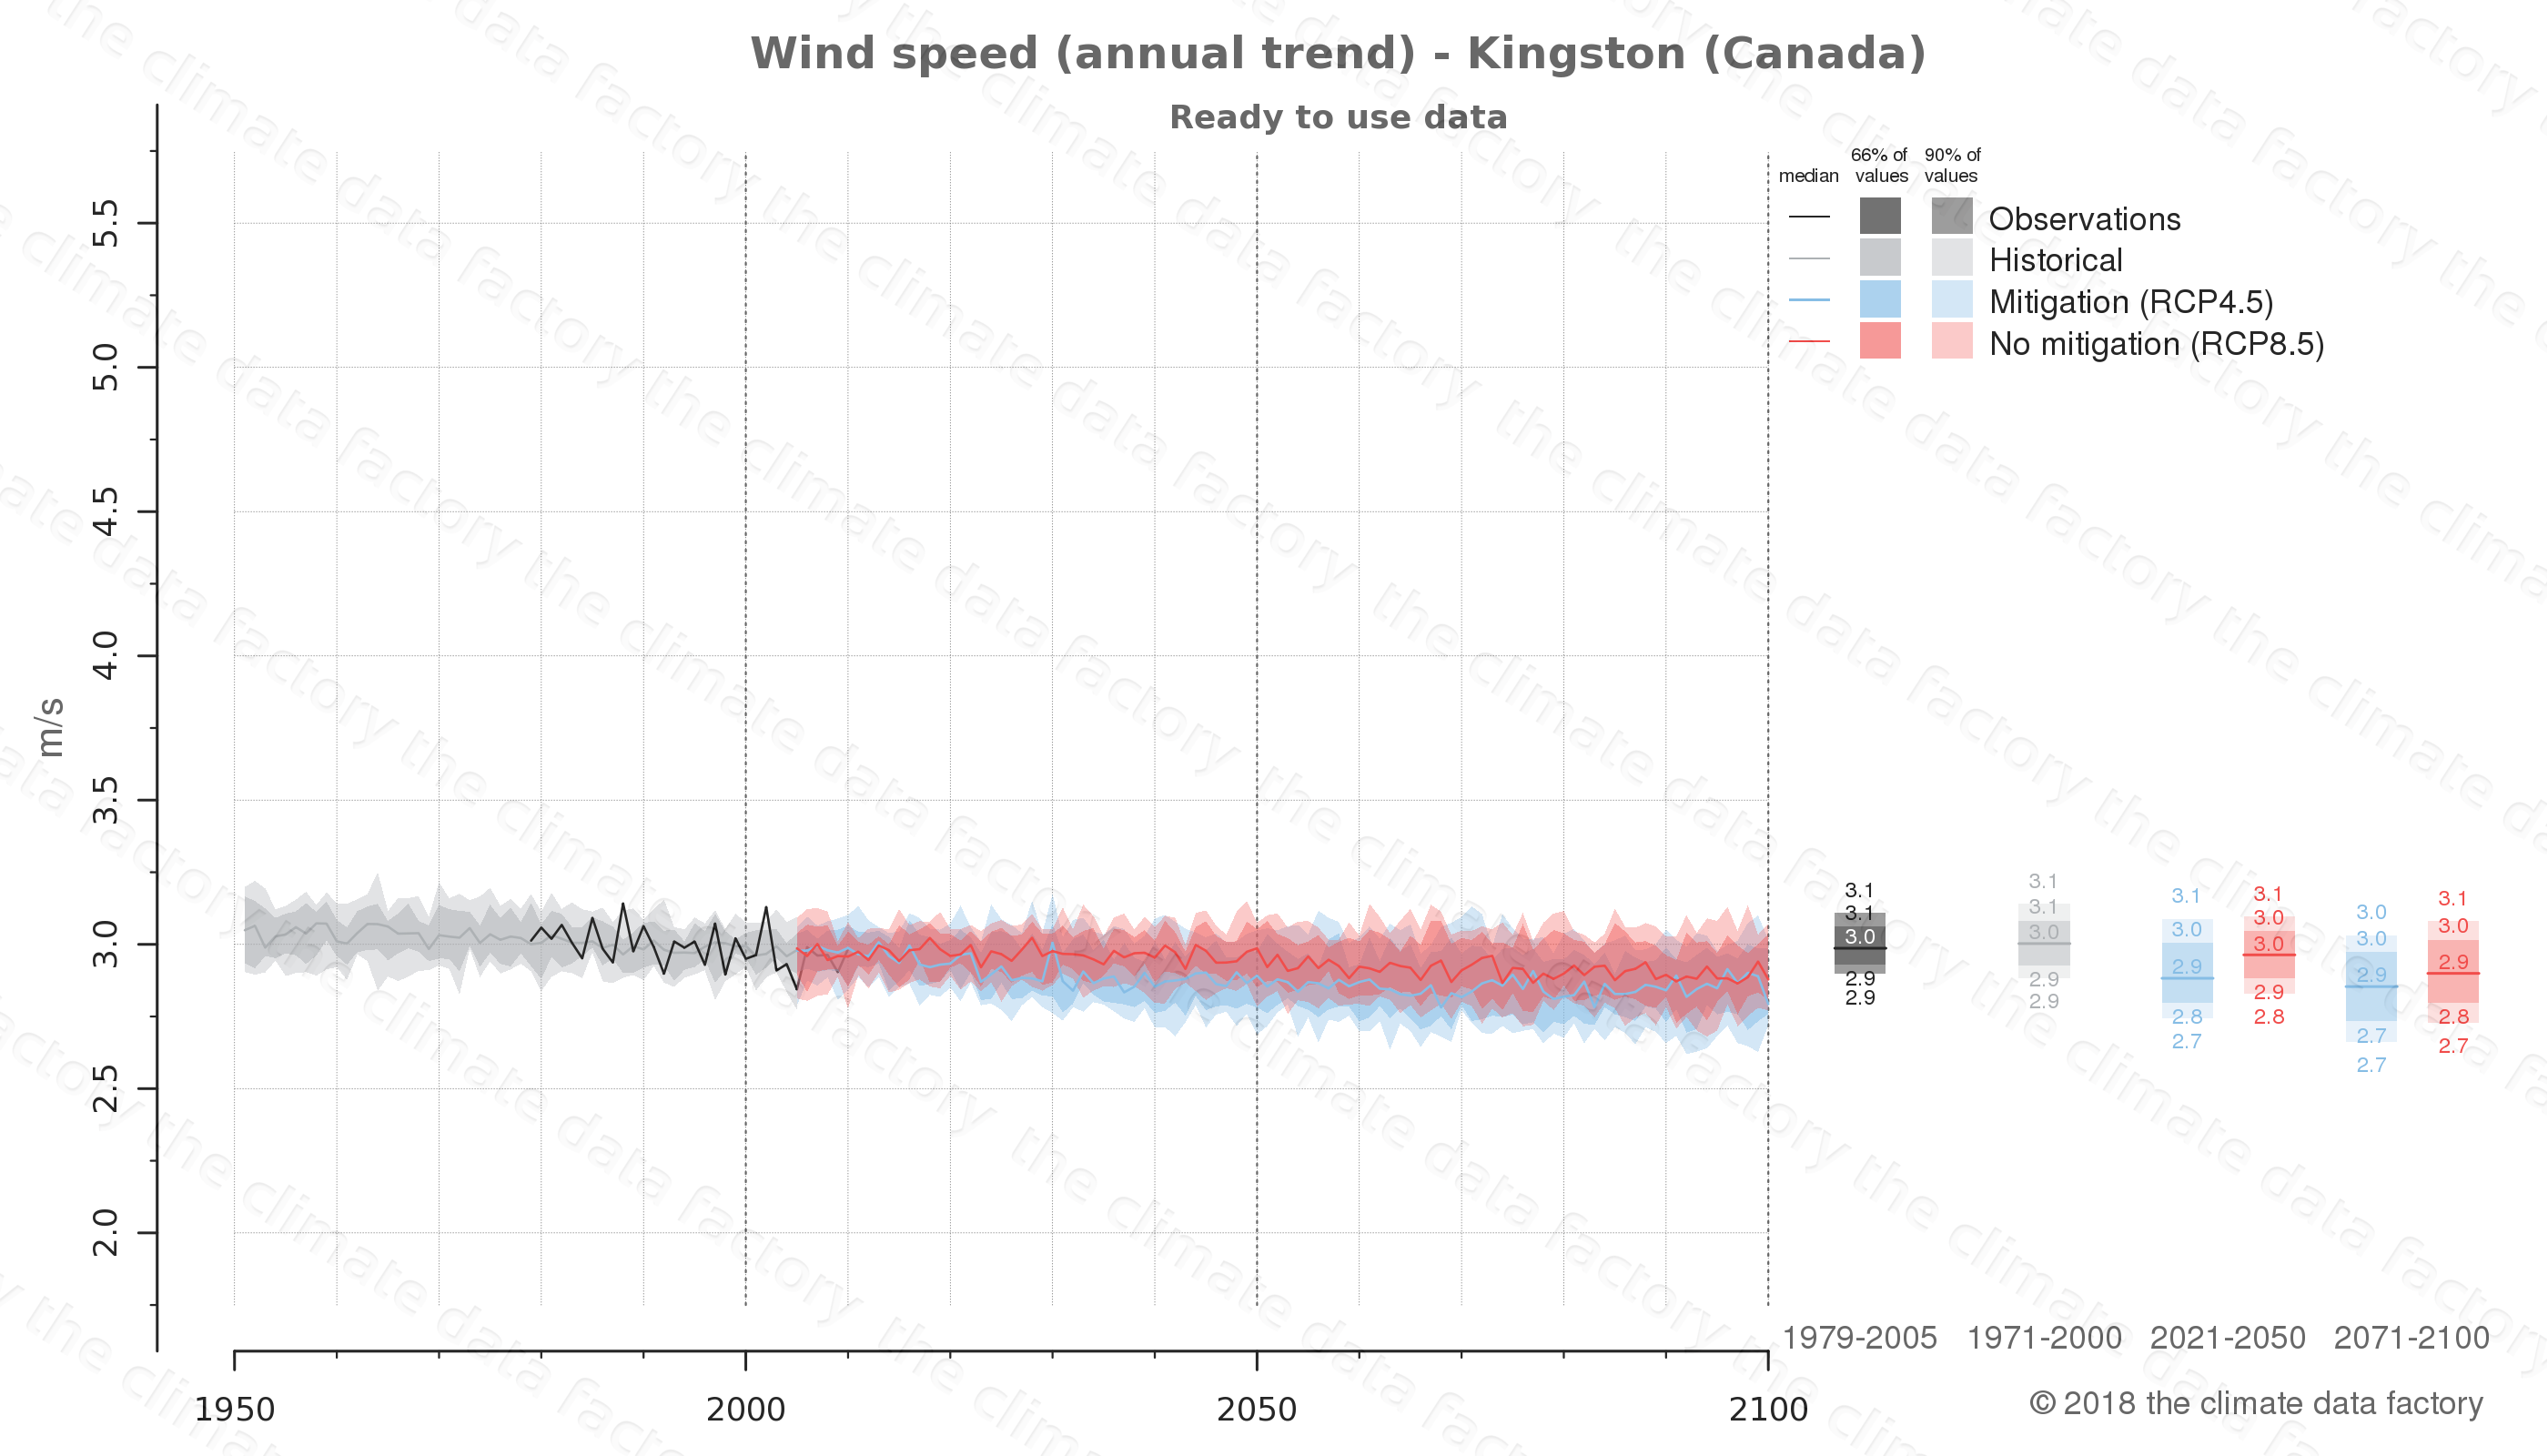 climate change data policy adaptation climate graph city data wind-speed kingston canada